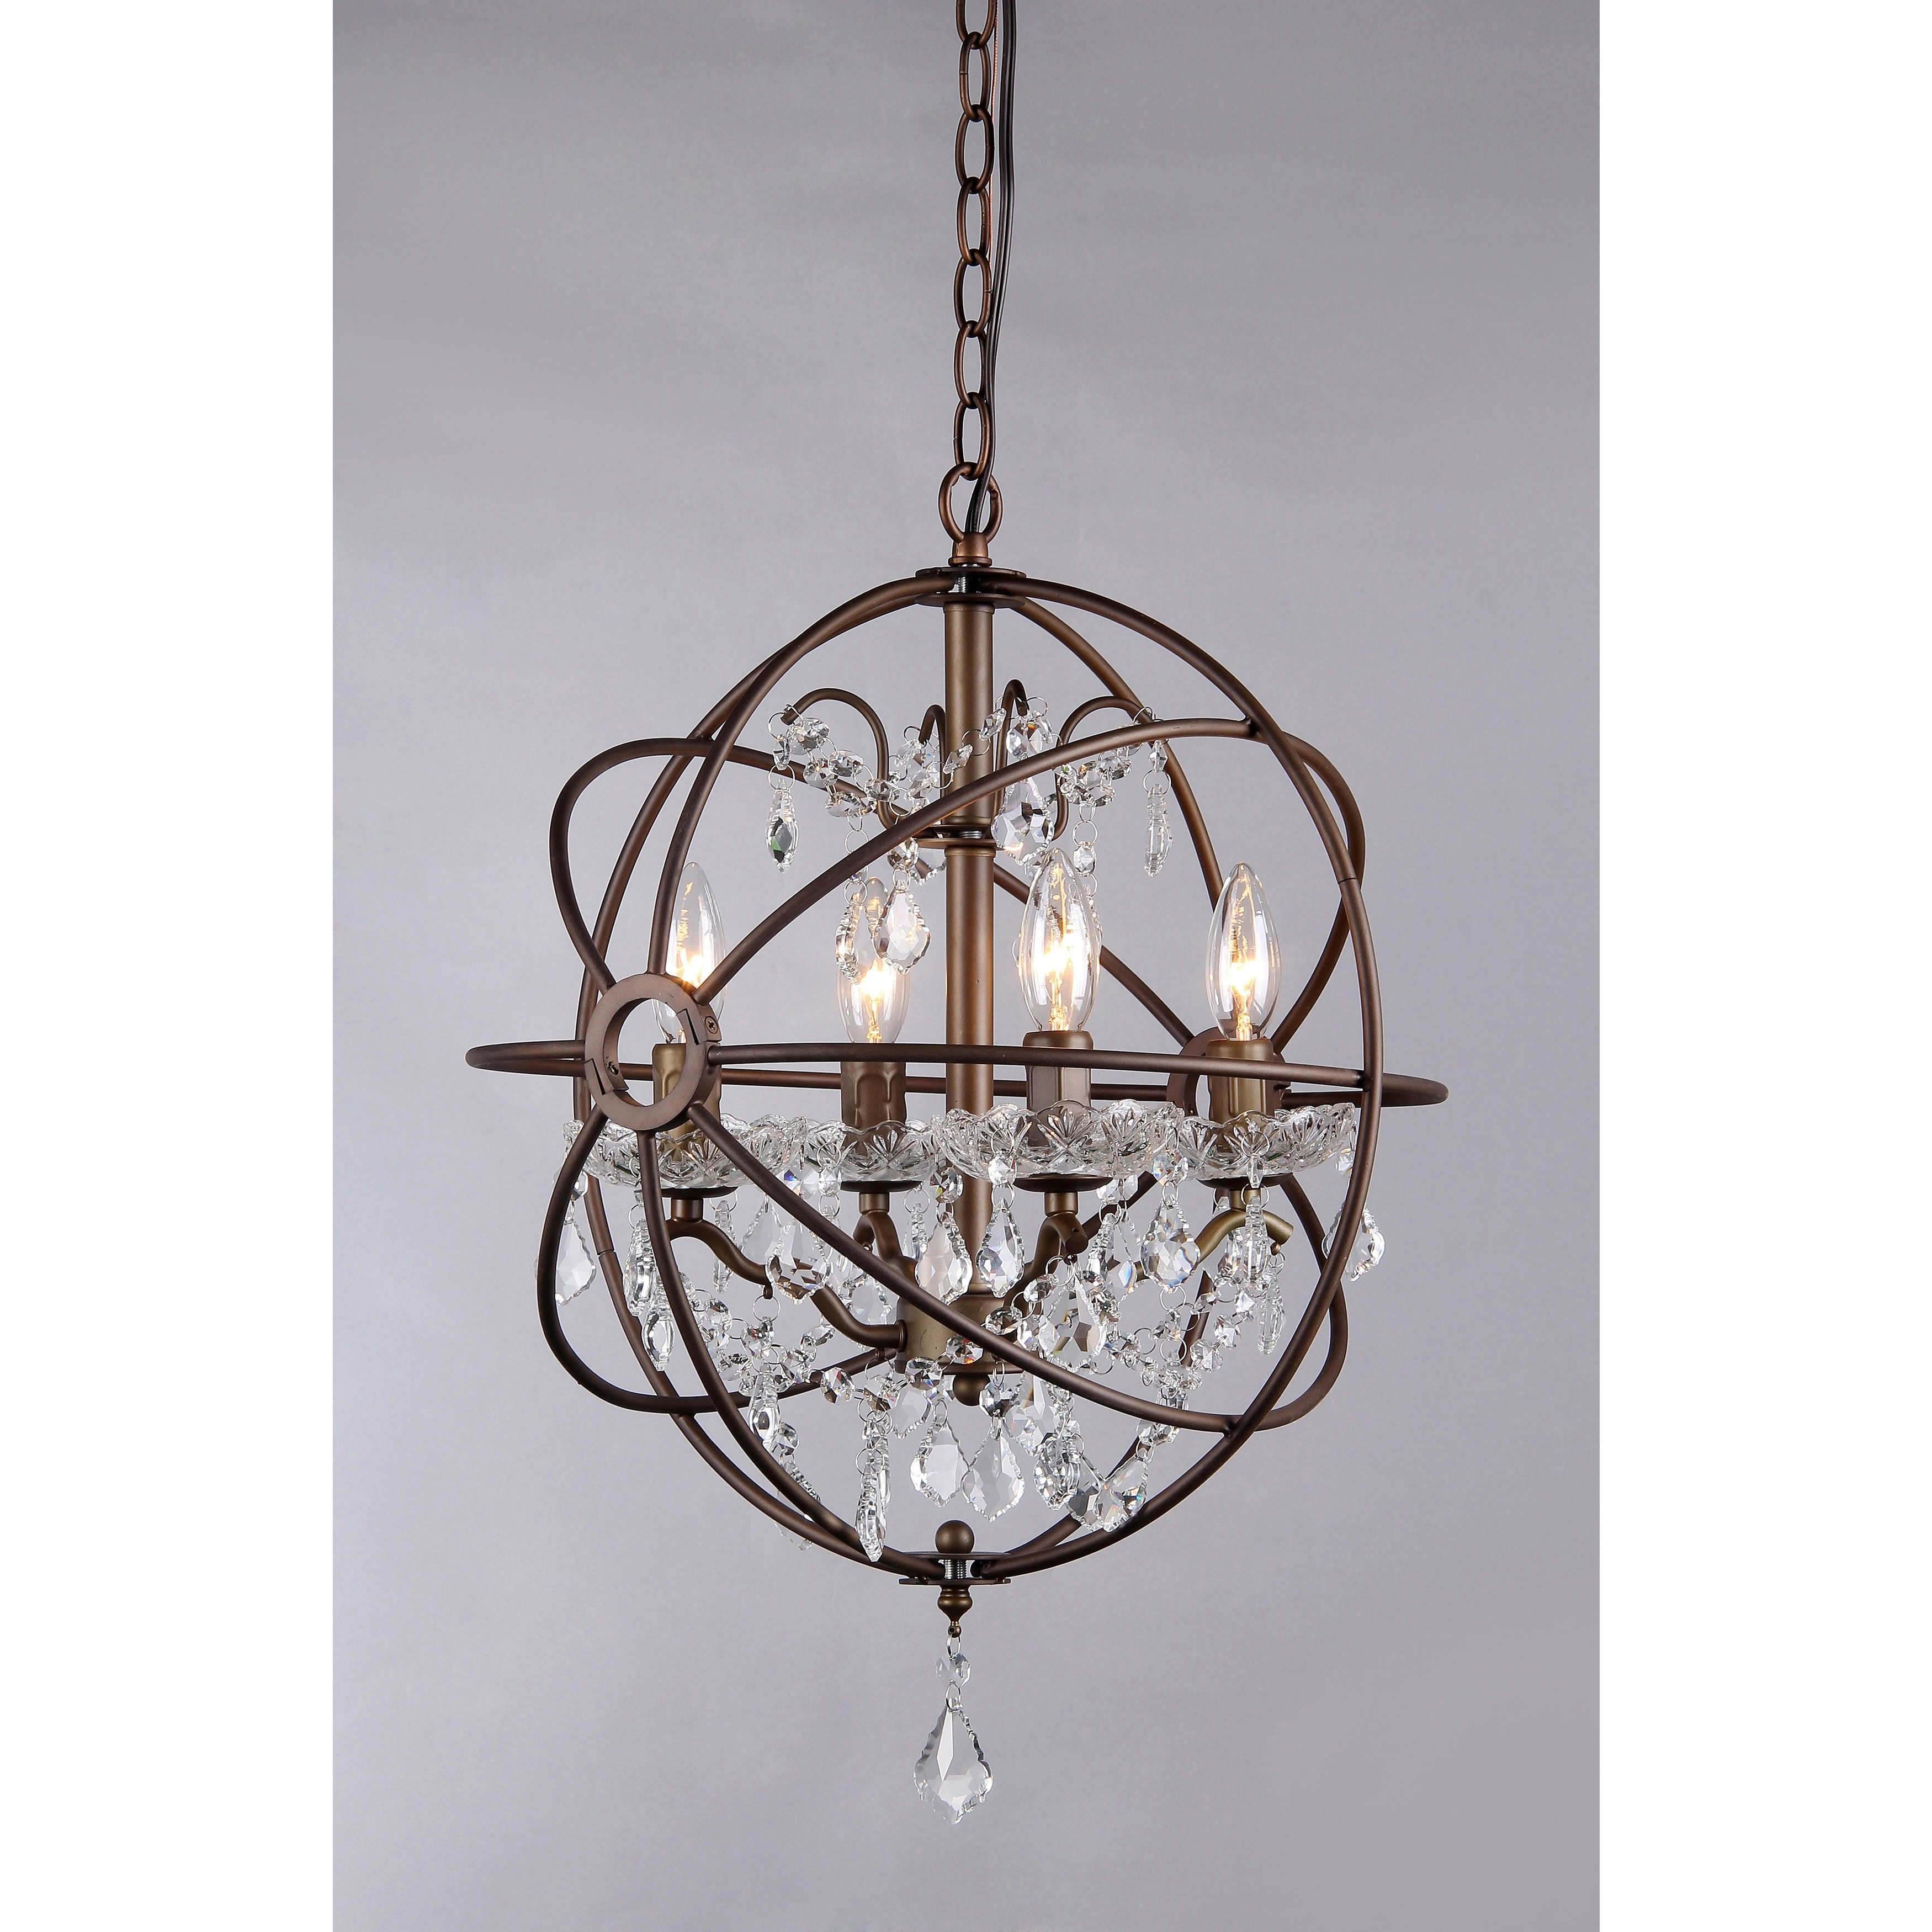 Edwards antique bronze 16 inch 4 light crystal chandelier free edwards antique bronze 16 inch 4 light crystal chandelier free shipping today overstock 16696171 arubaitofo Image collections